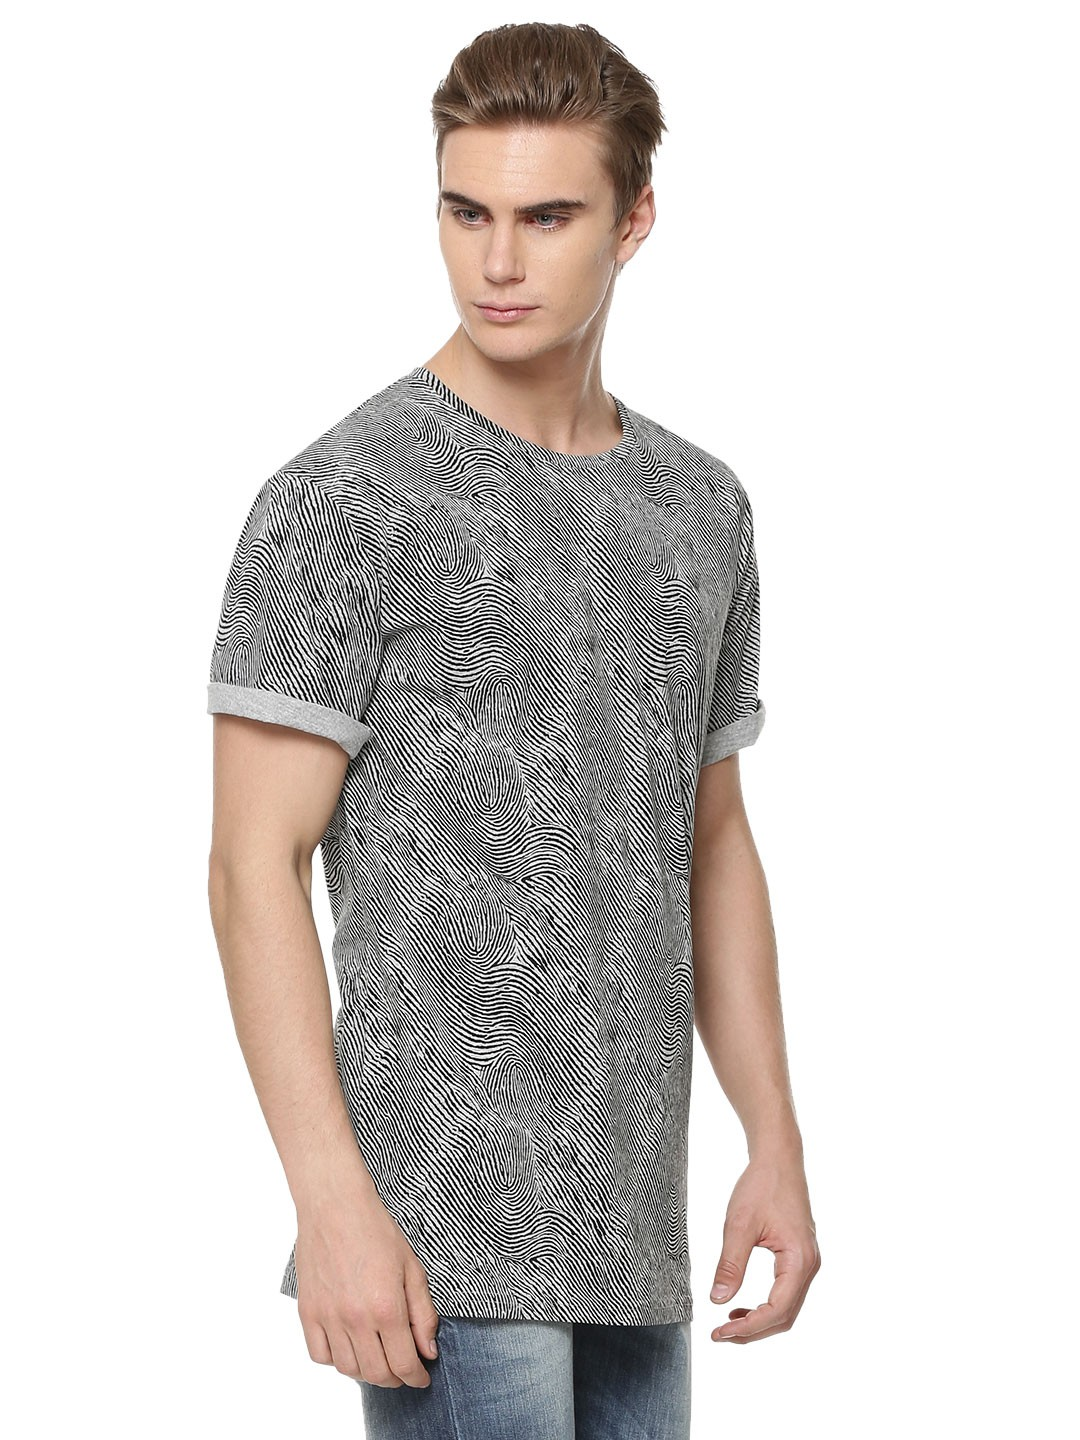 buy only sons t shirt with finger print impression for men men 39 s grey t shirts online in india. Black Bedroom Furniture Sets. Home Design Ideas